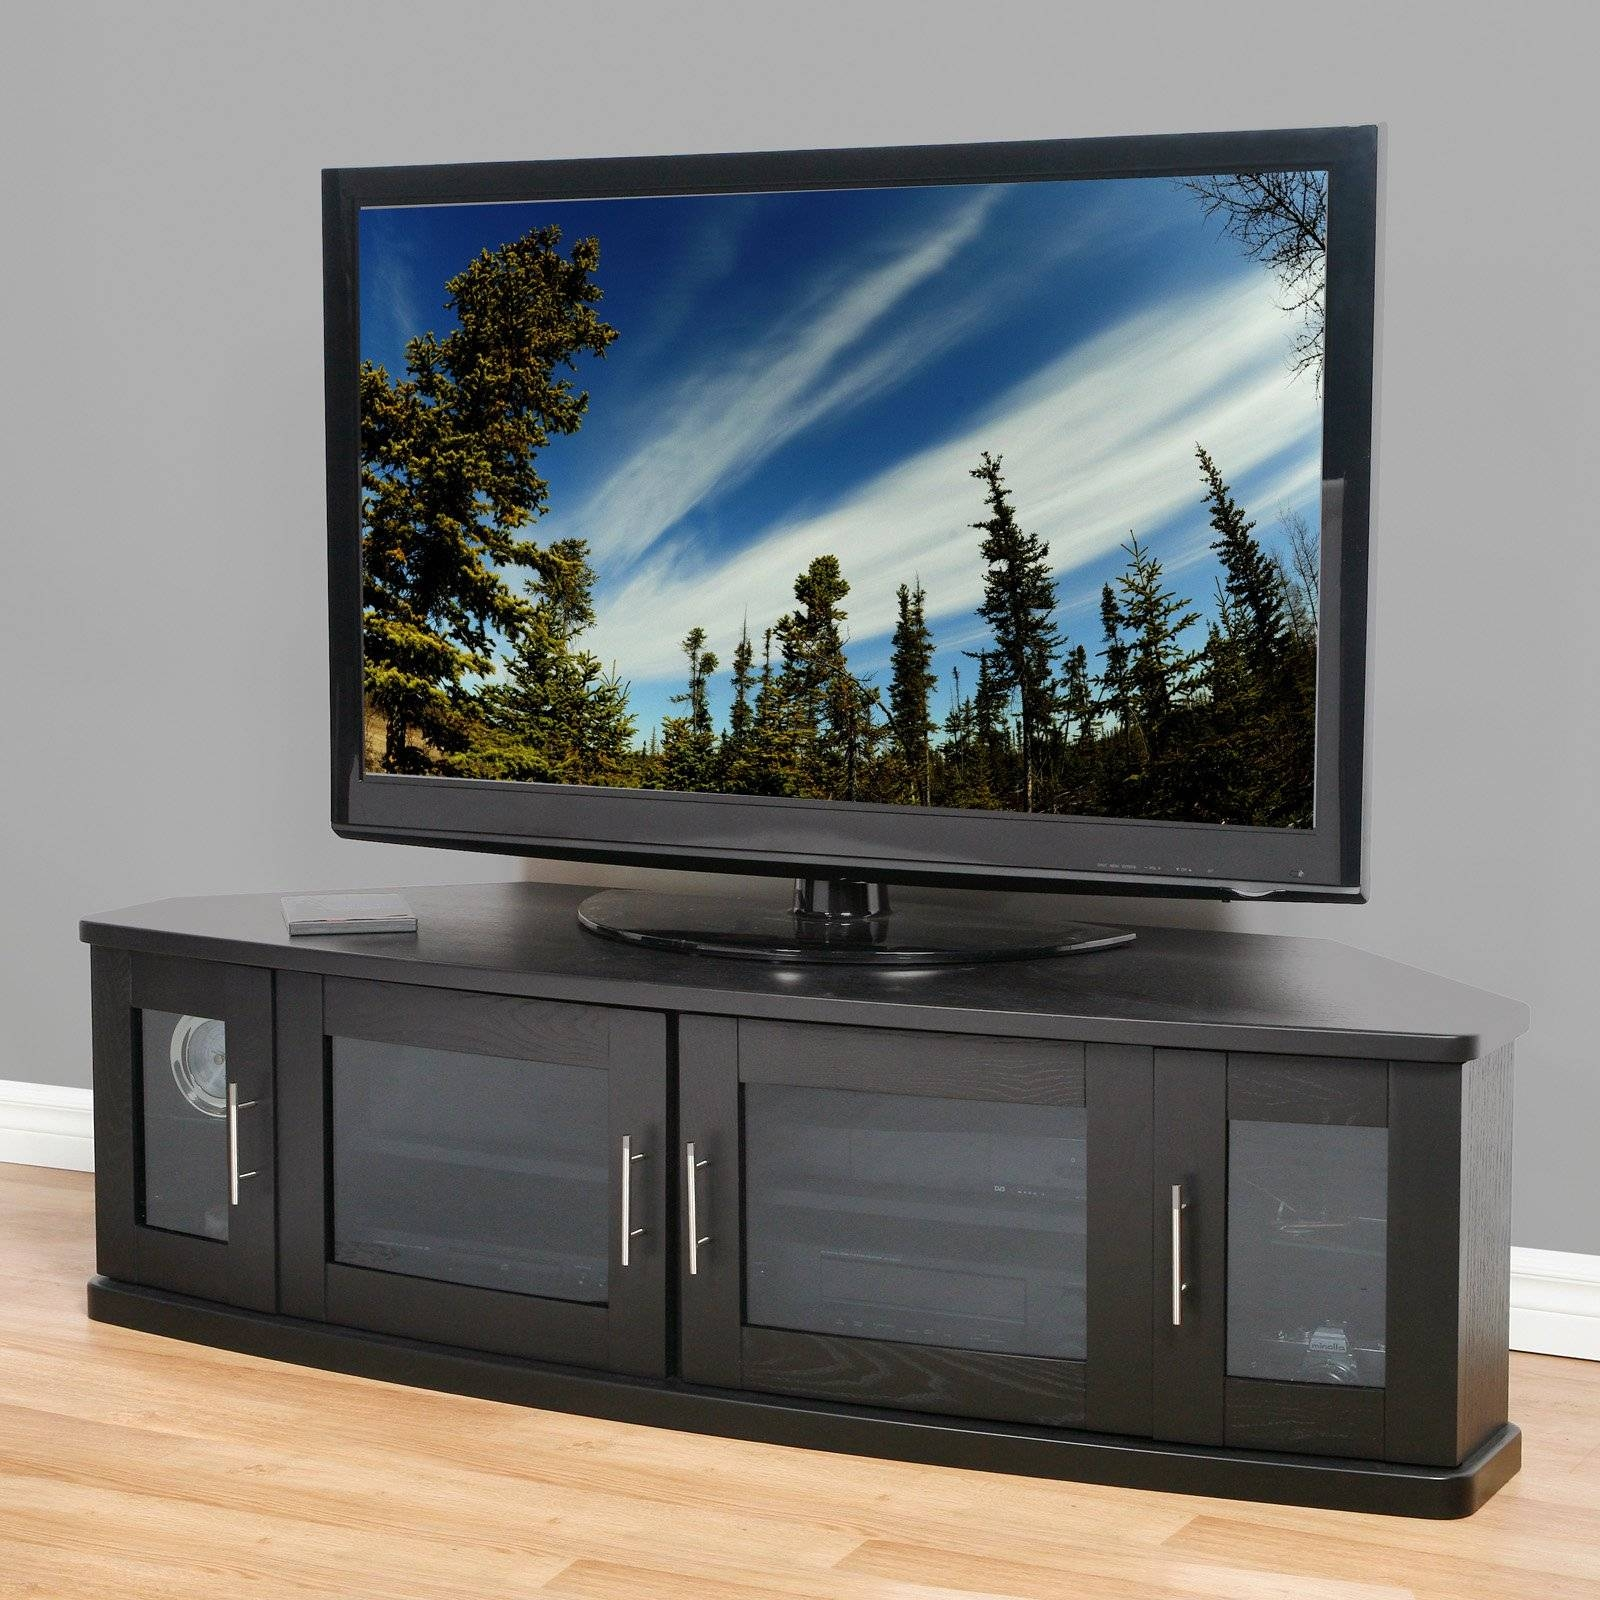 Large Corner Tv Cabinet With 4 Glass Doors And Silver Handle intended for Corner Tv Cabinets With Glass Doors (Image 9 of 15)